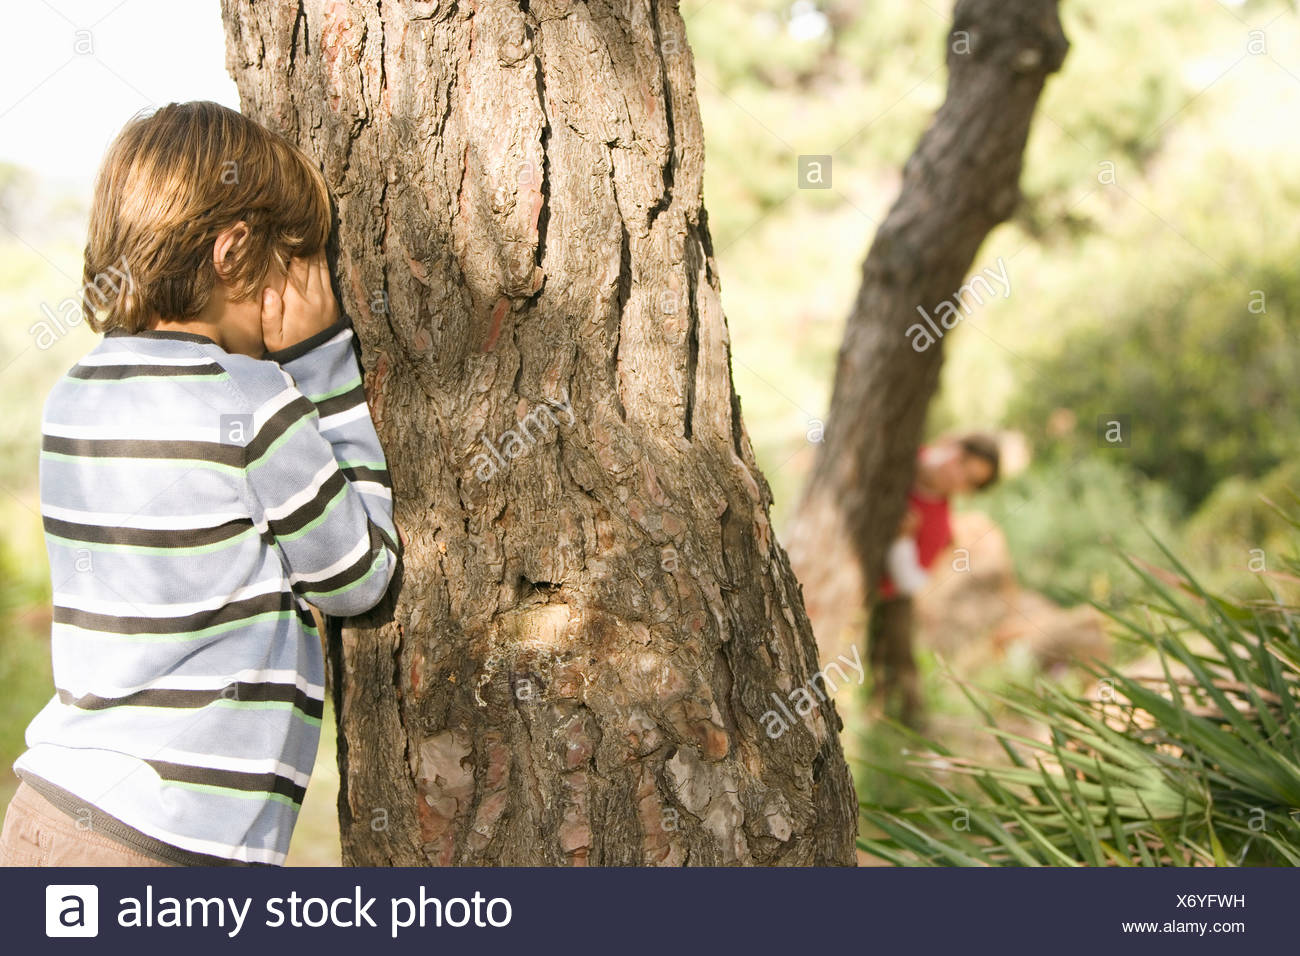 Children playing hide and seek in forest - Stock Image